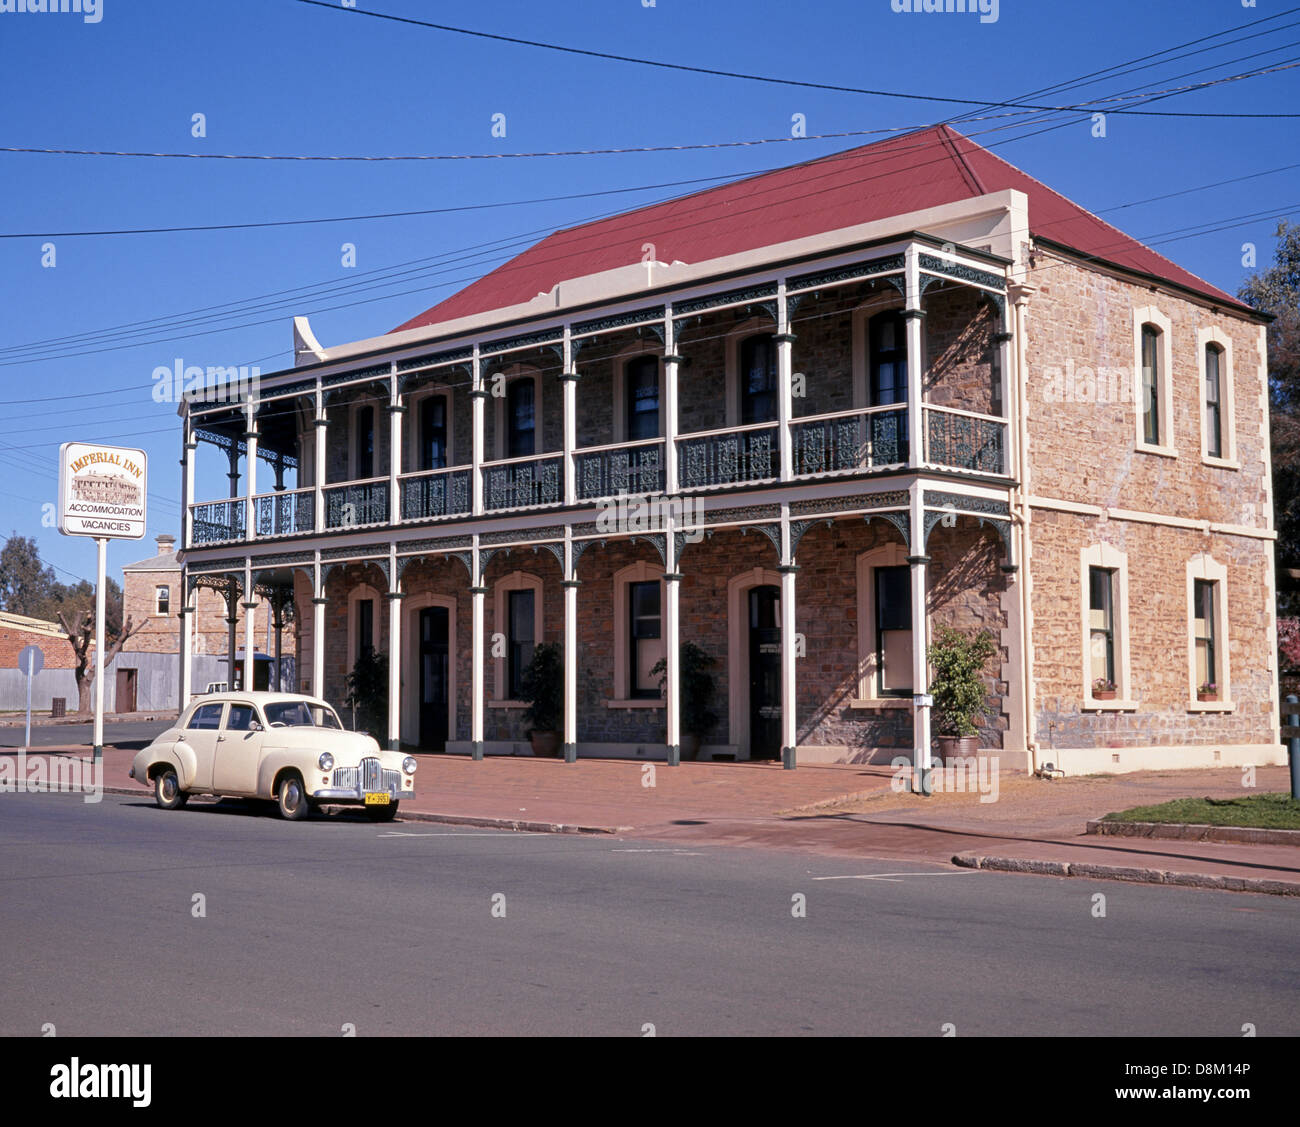 Historic old town building, York, Federal Division of Pearce, Western Australia, Australia. - Stock Image